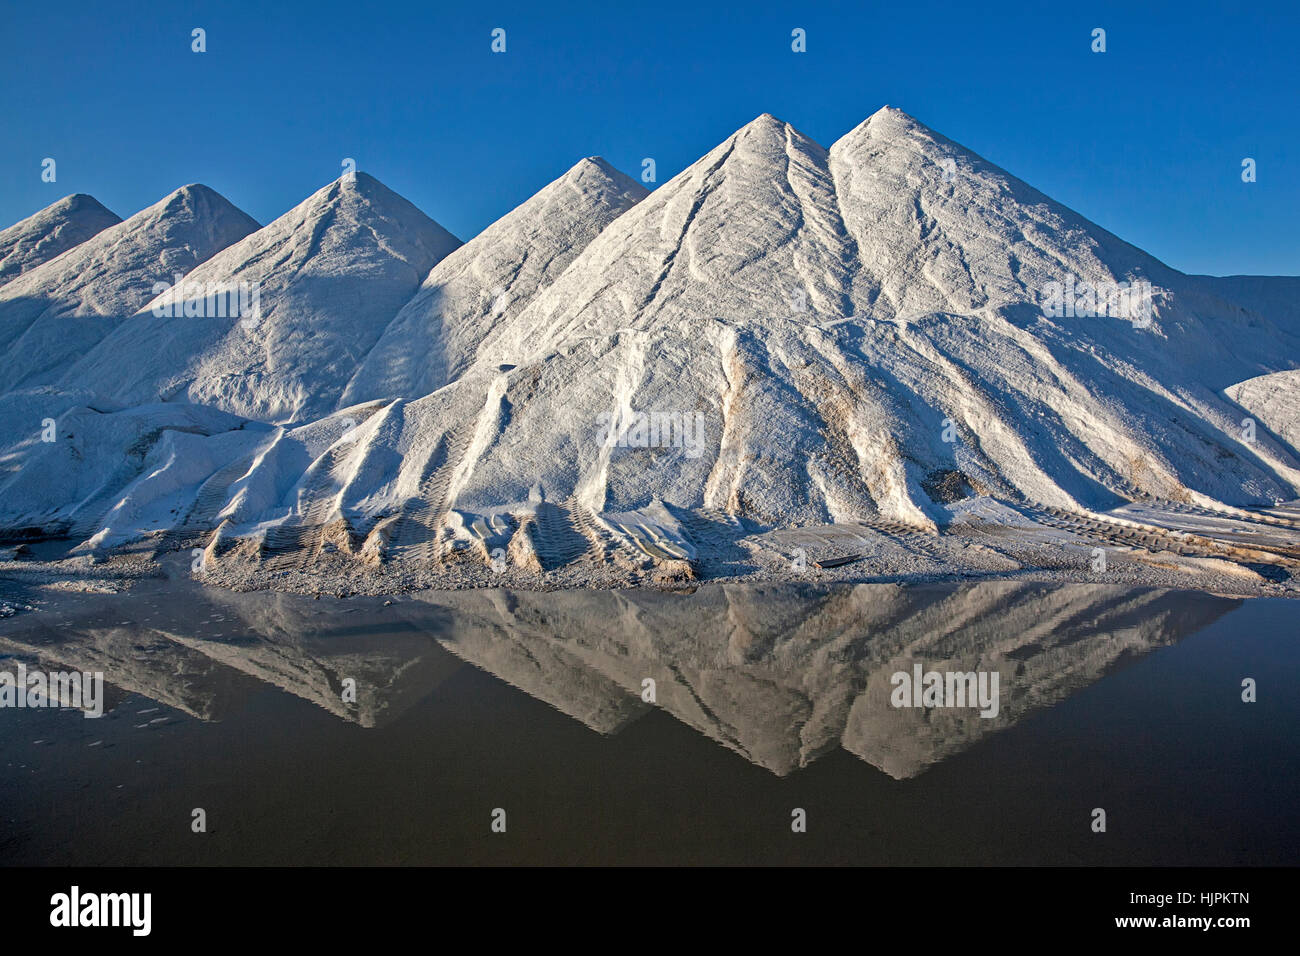 Pyramids of salt on the salt lake in Turkey - Stock Image